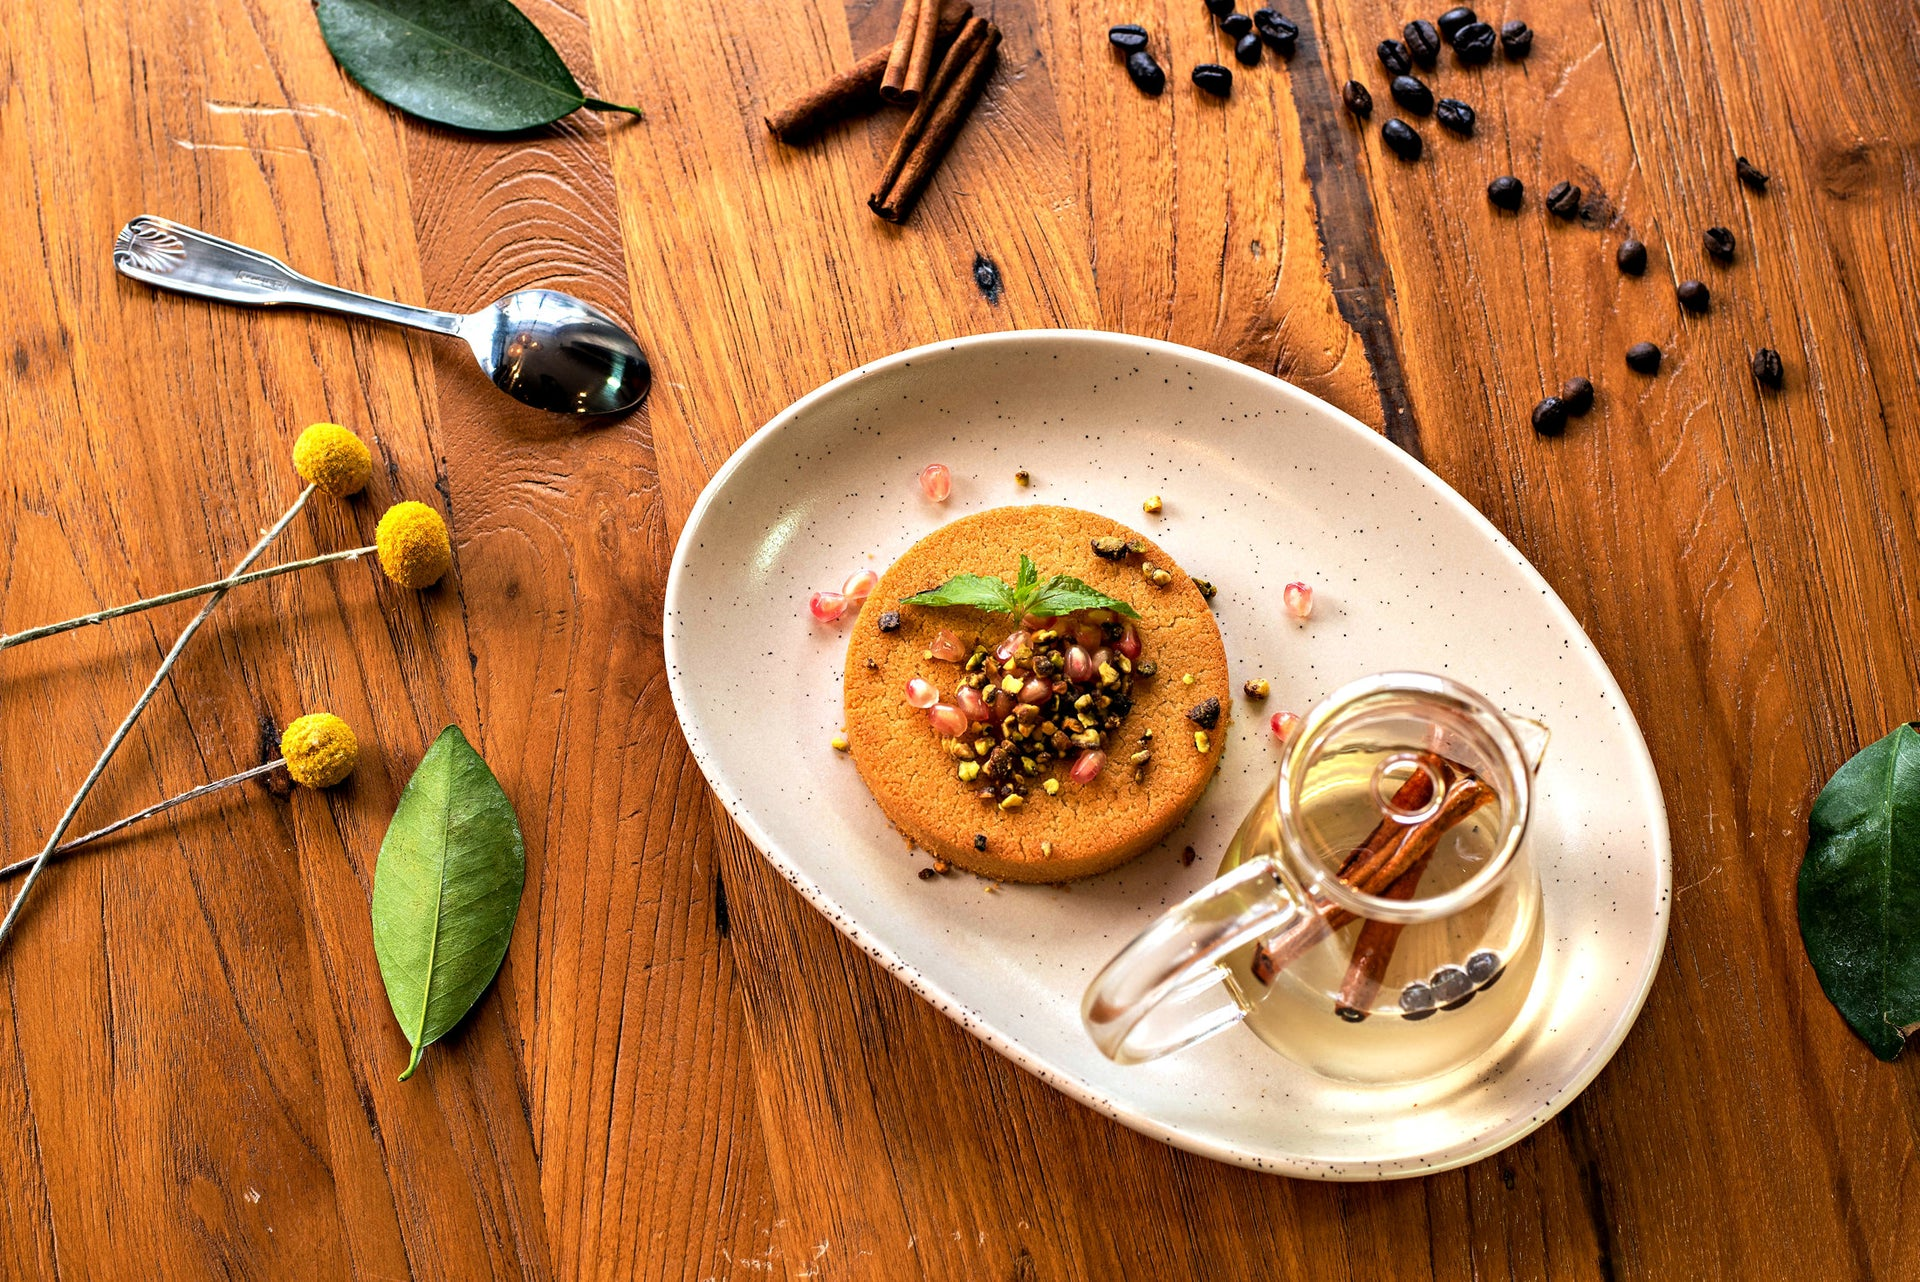 For dessert, Daka offers an excellent knafeh. 'We make the knafeh for an individual diner, unlike our custom which is to have it as a portion for the entire table.'